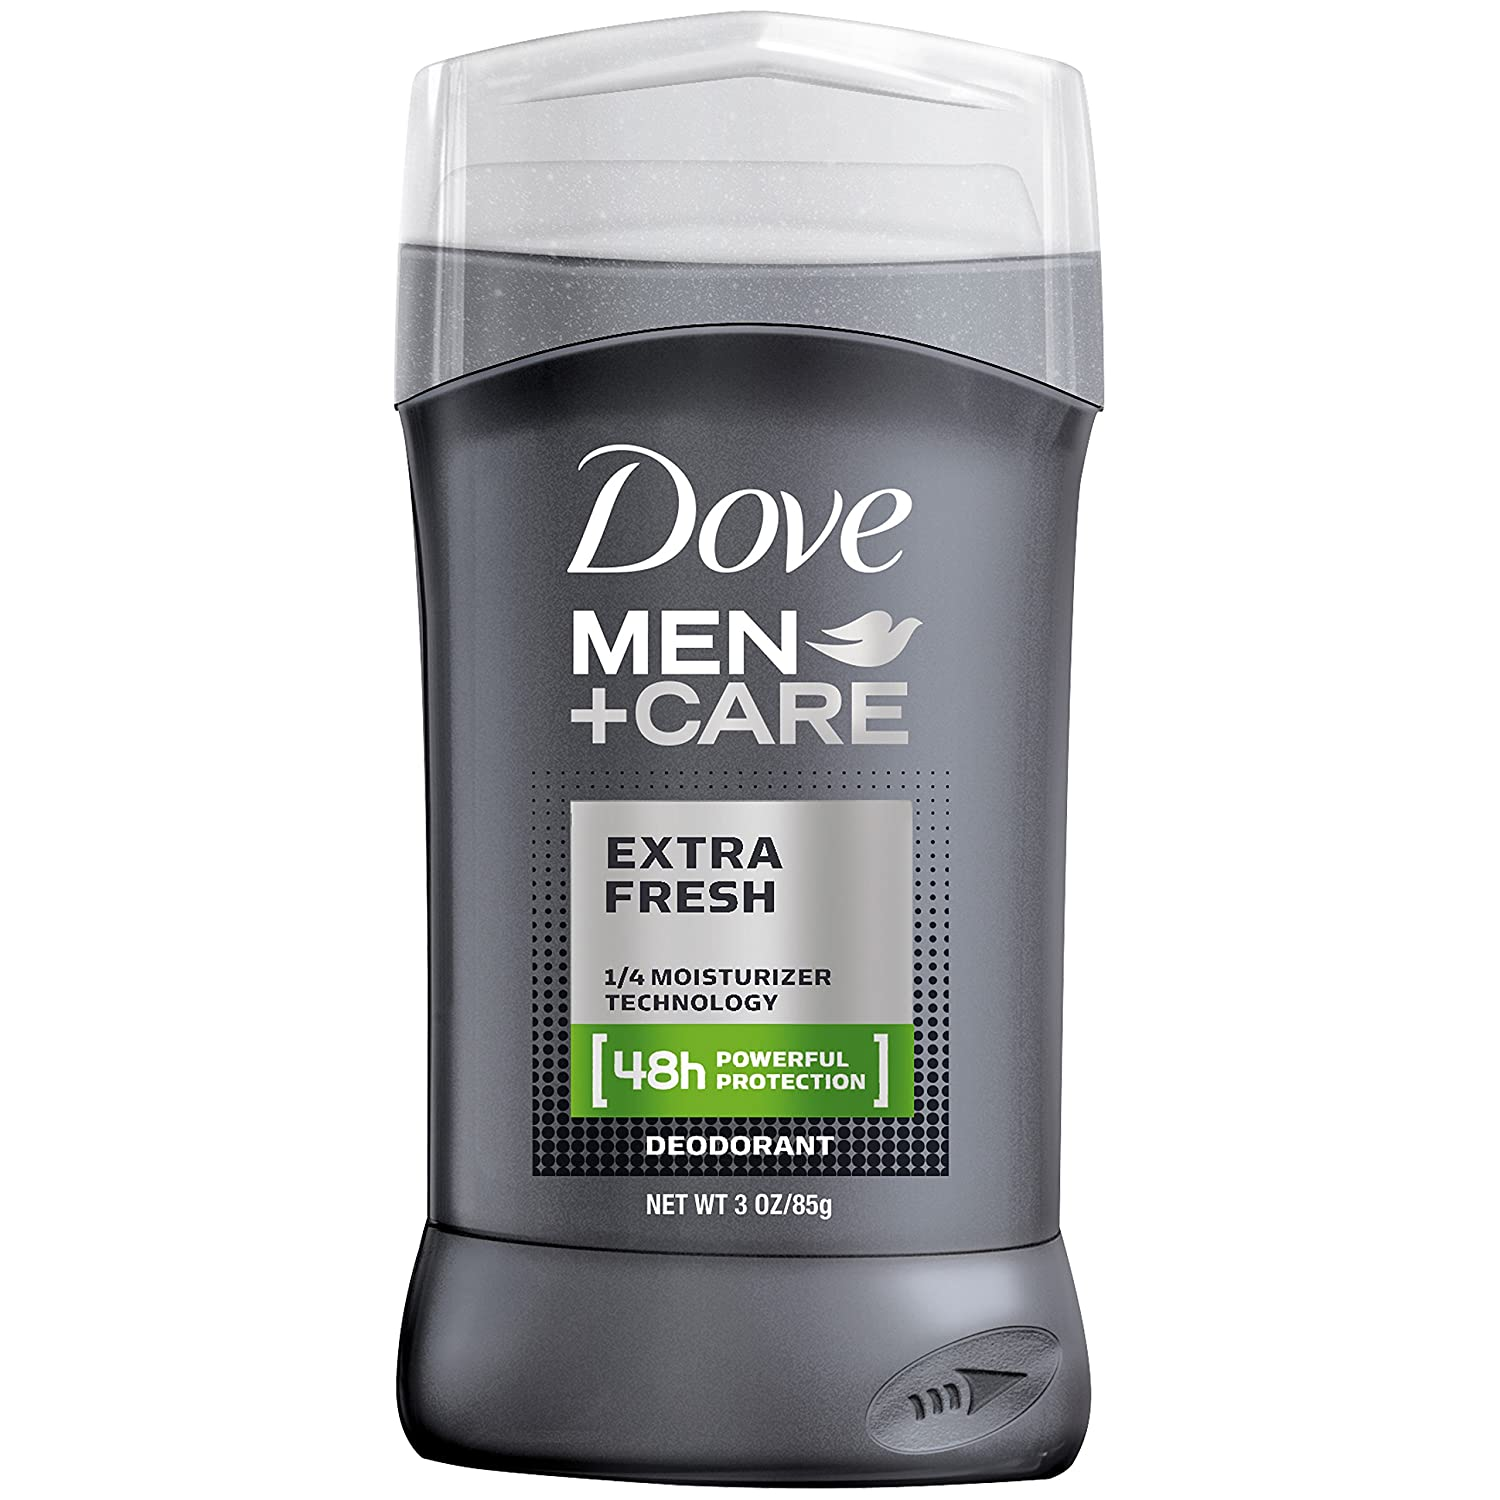 Dove Men+Care Deodorant Stick, Extra Fresh 3.0 oz